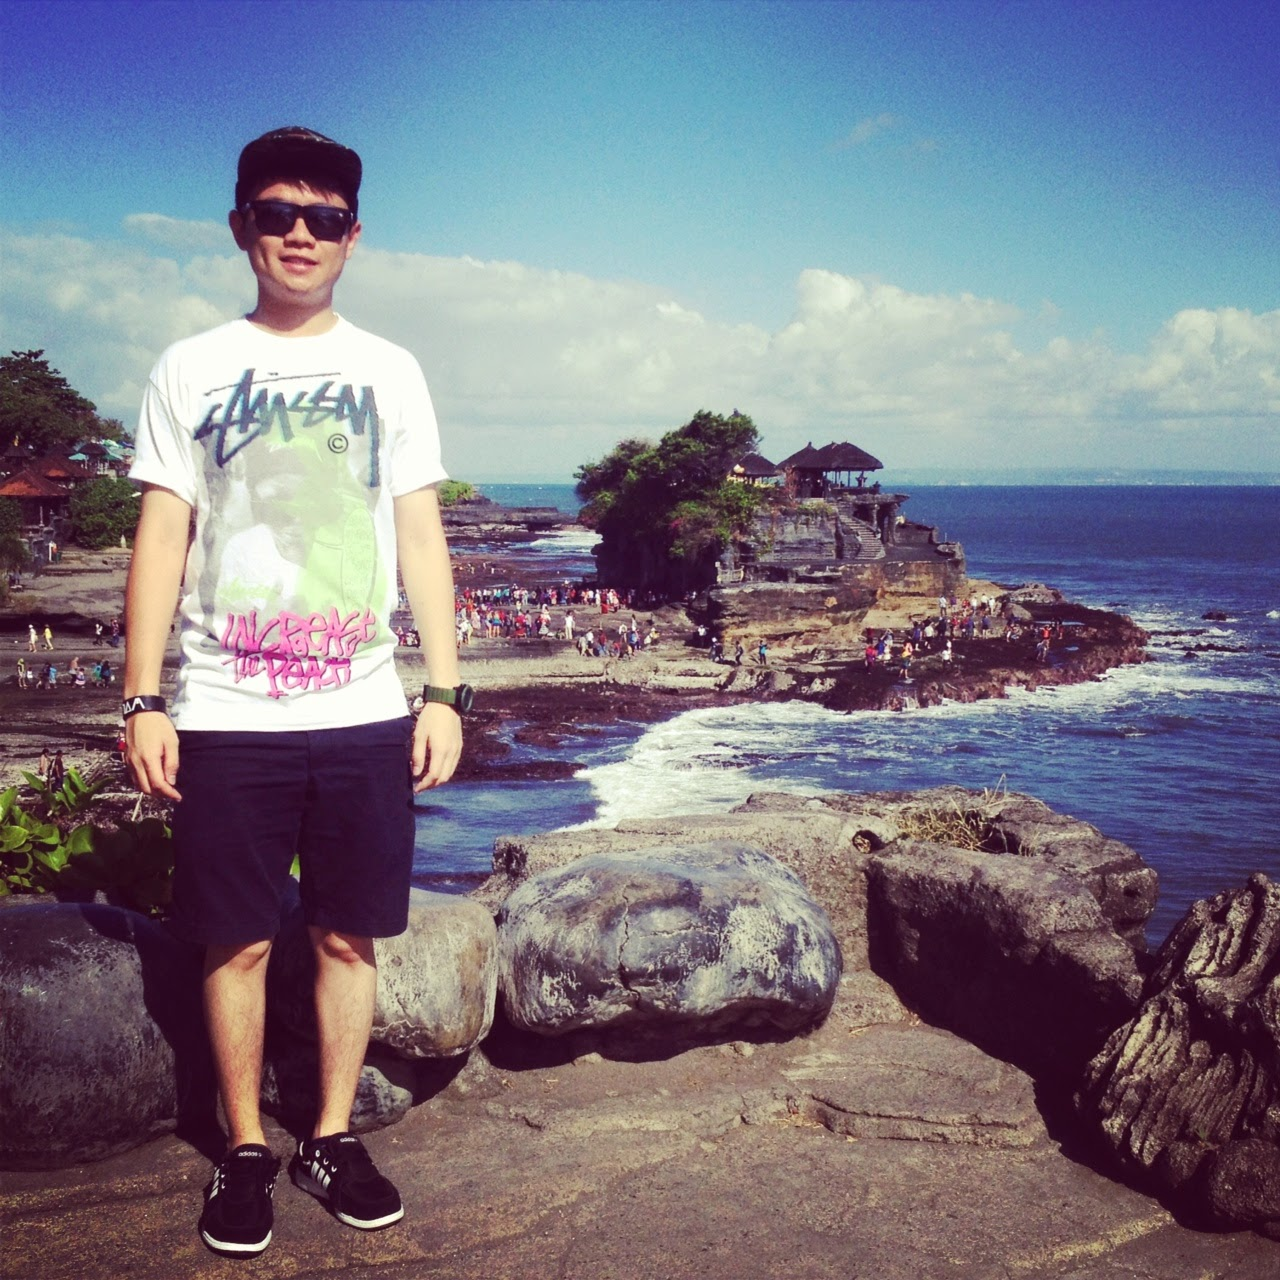 VISITED TANAH LOT TEMPLE IN BALI, SUPERB VIEW